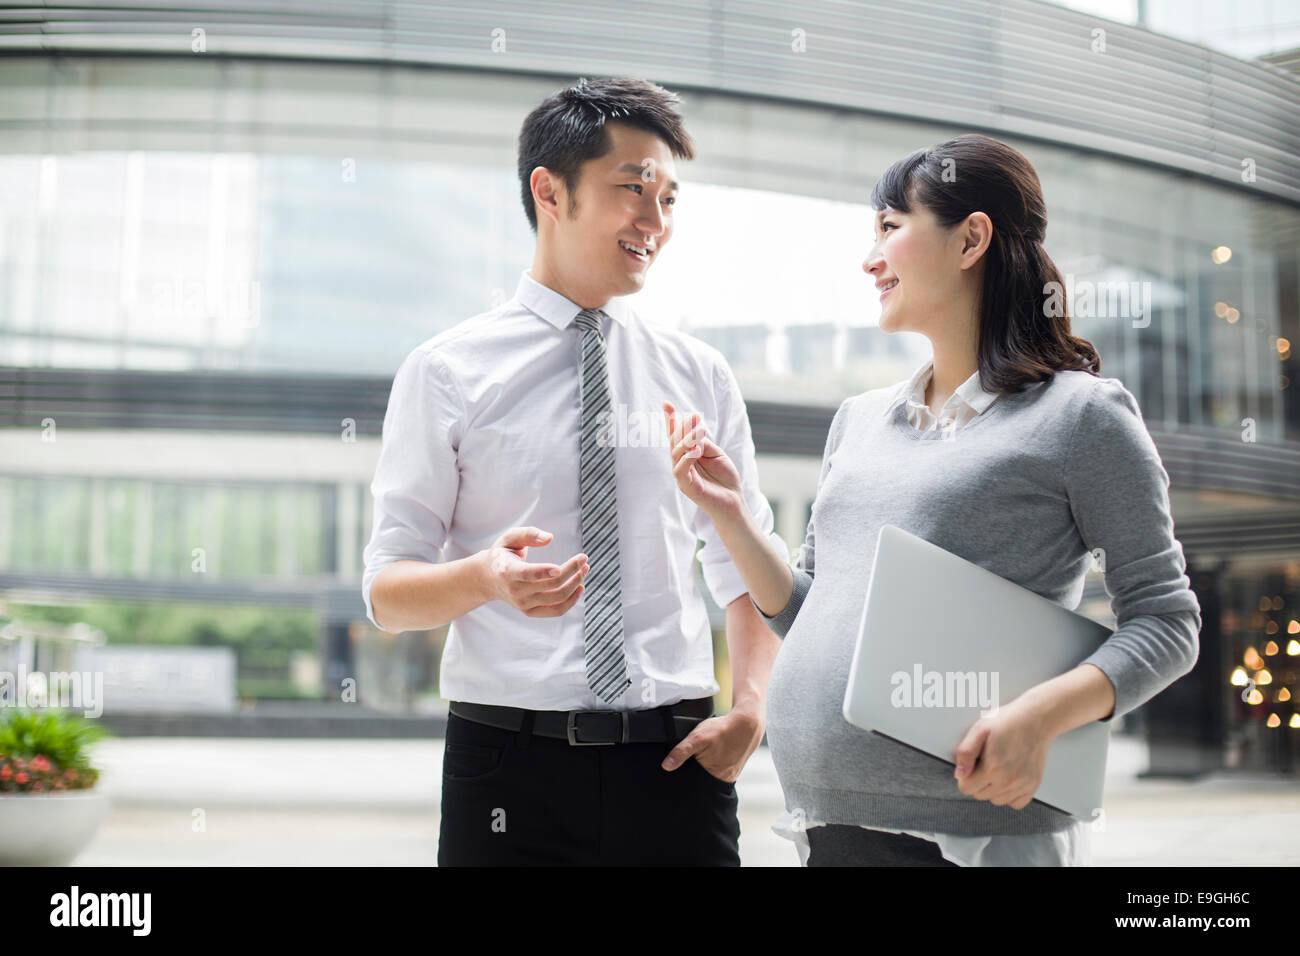 Pregnant businesswoman talking with colleague - Stock Image